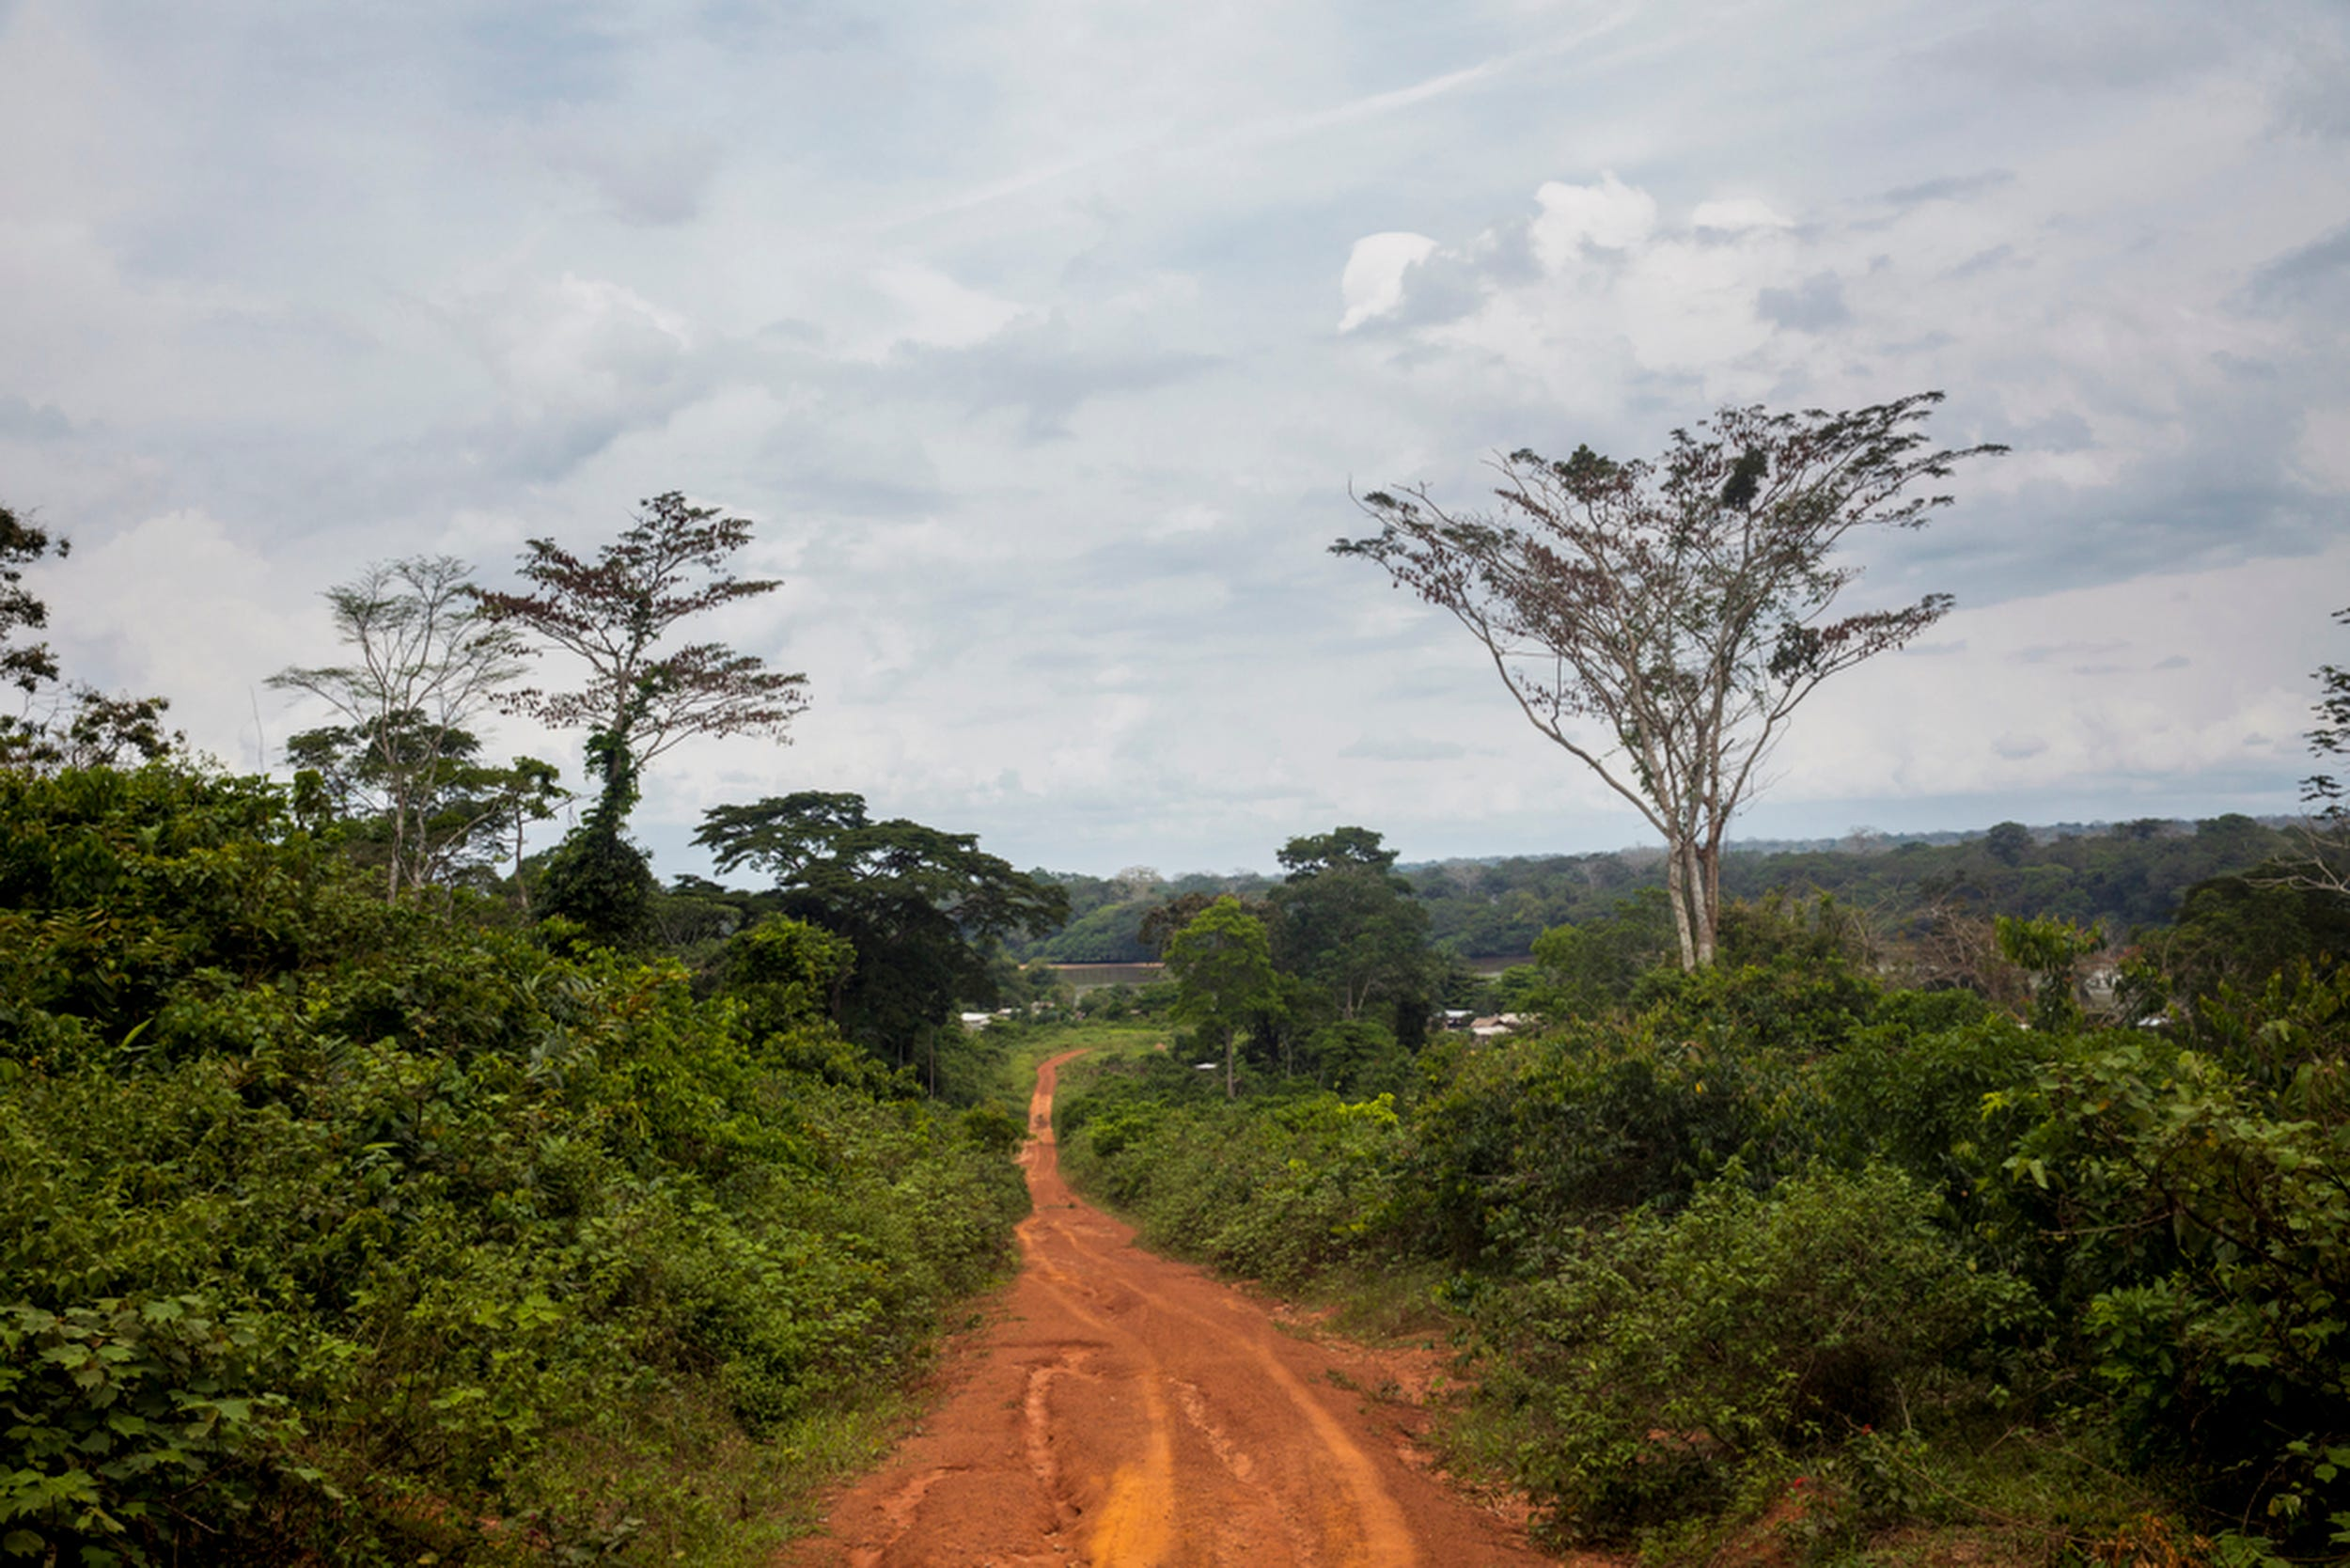 """After a week in the forest, the group leaves to return to the Nouabale-Ndoki National Park's headquarters in Bomassa. """"The heartening part is that this has only been protected for less than 25 years,"""" said Thane Maynard. """"It was through the work of the Wildlife Conservation Society, Dr. Mike Fay and his mega transect and hundreds of other people that worked for the government of Congo to say this is important."""""""